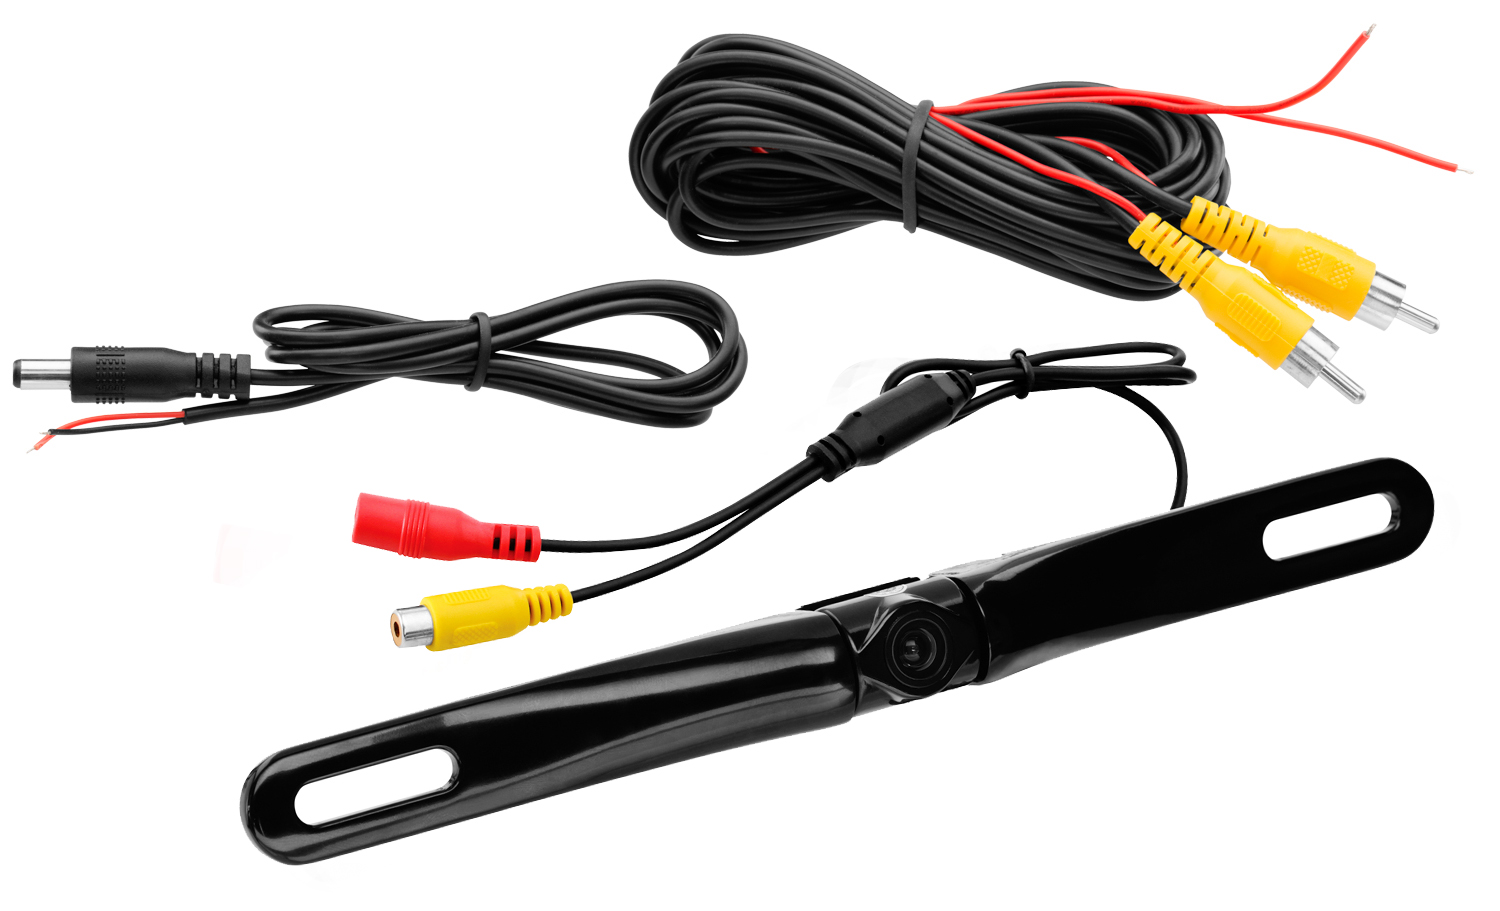 hight resolution of boss bv9965 wire harness 15 pin